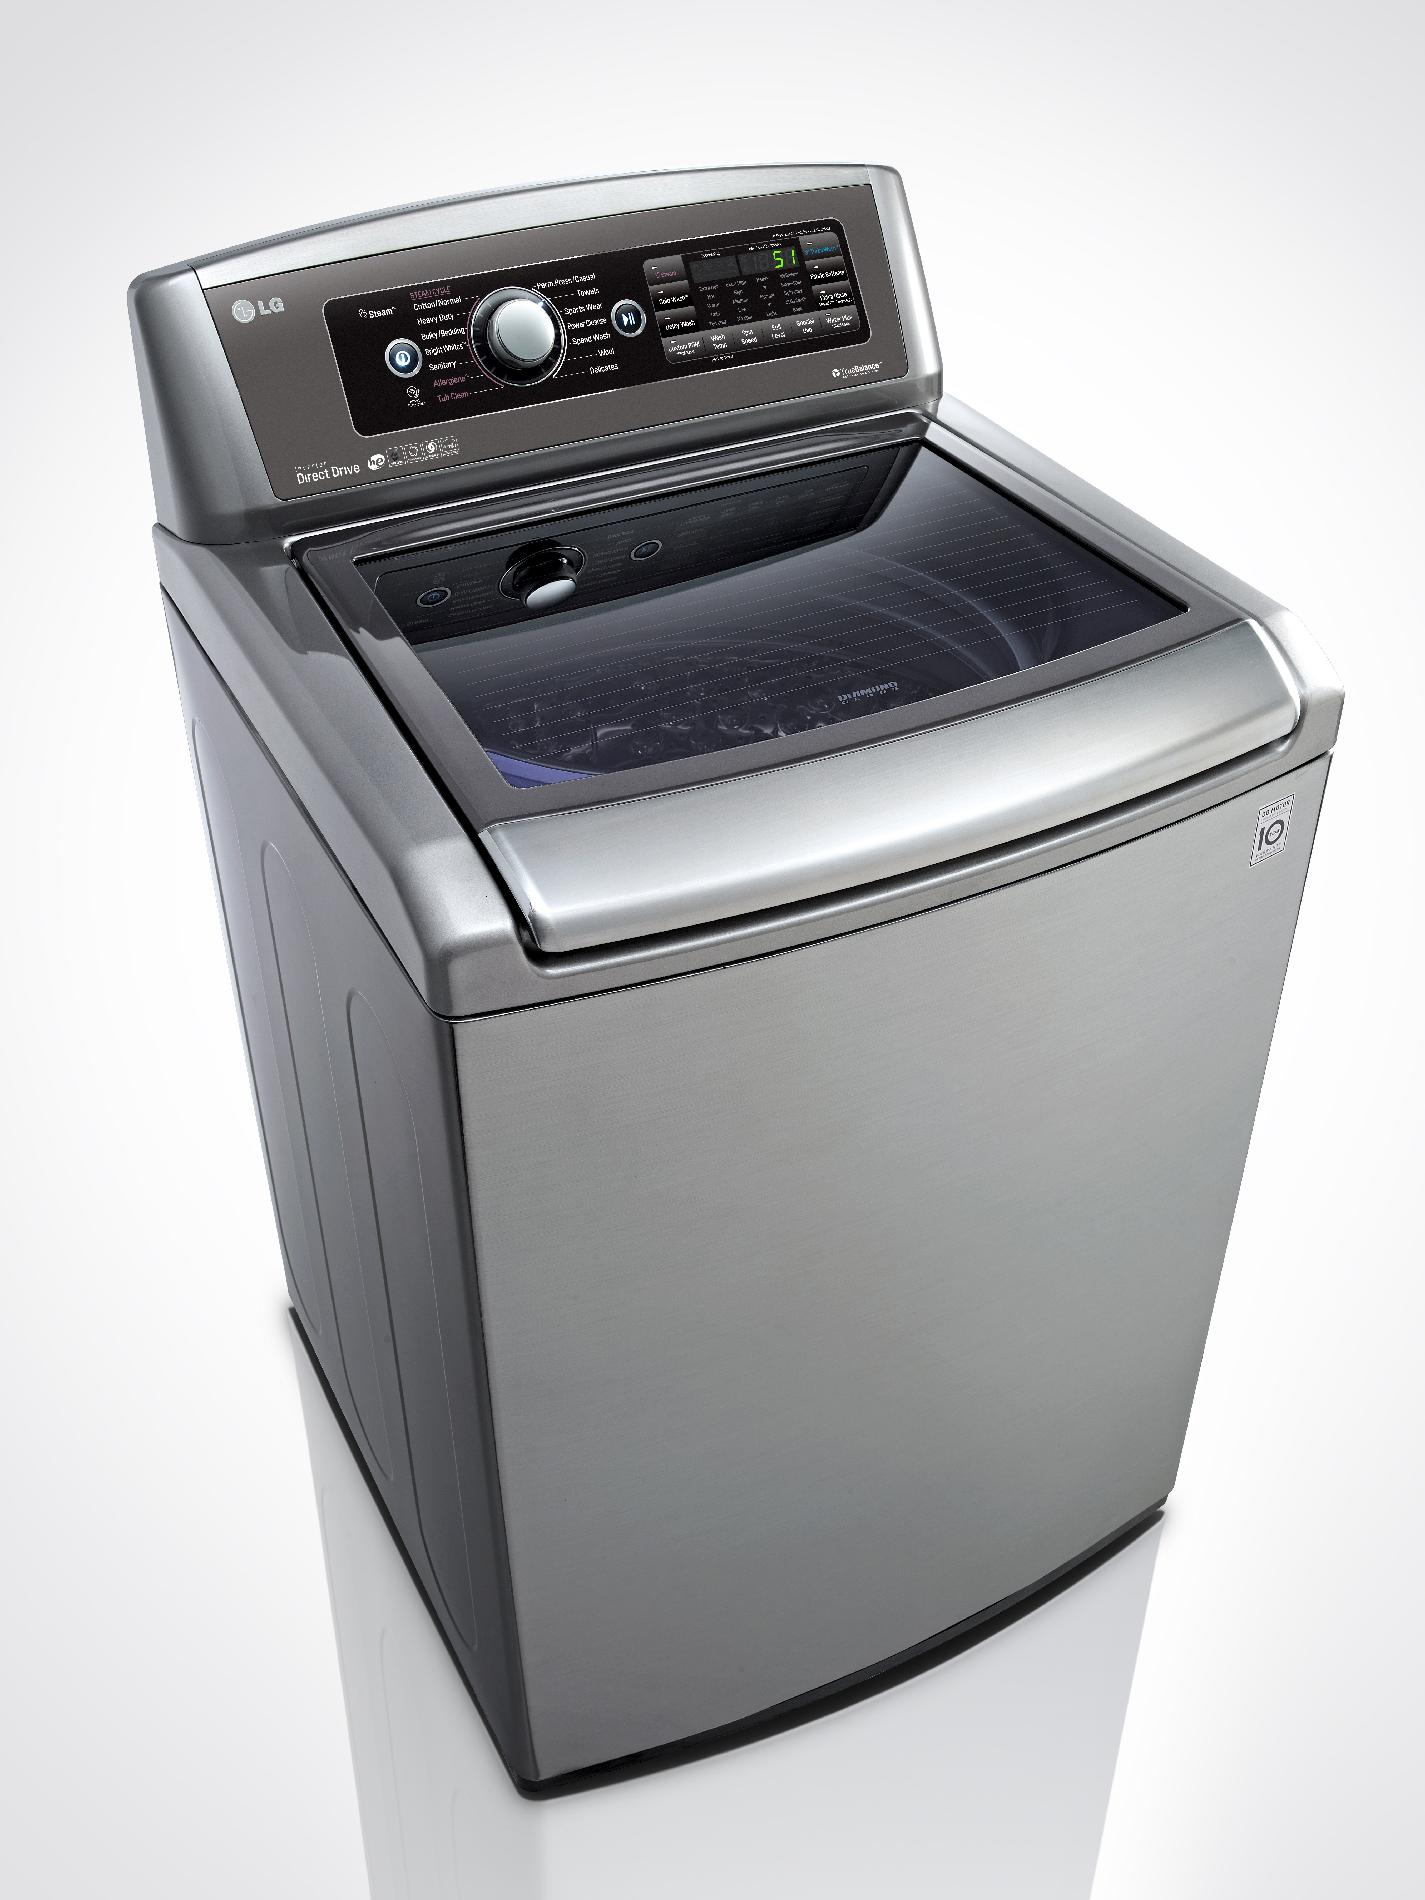 LG WT5680HVA 5.0 cu. ft. High Efficiency Top-Load Washer w/ TurboWash™ - Graphite Steel